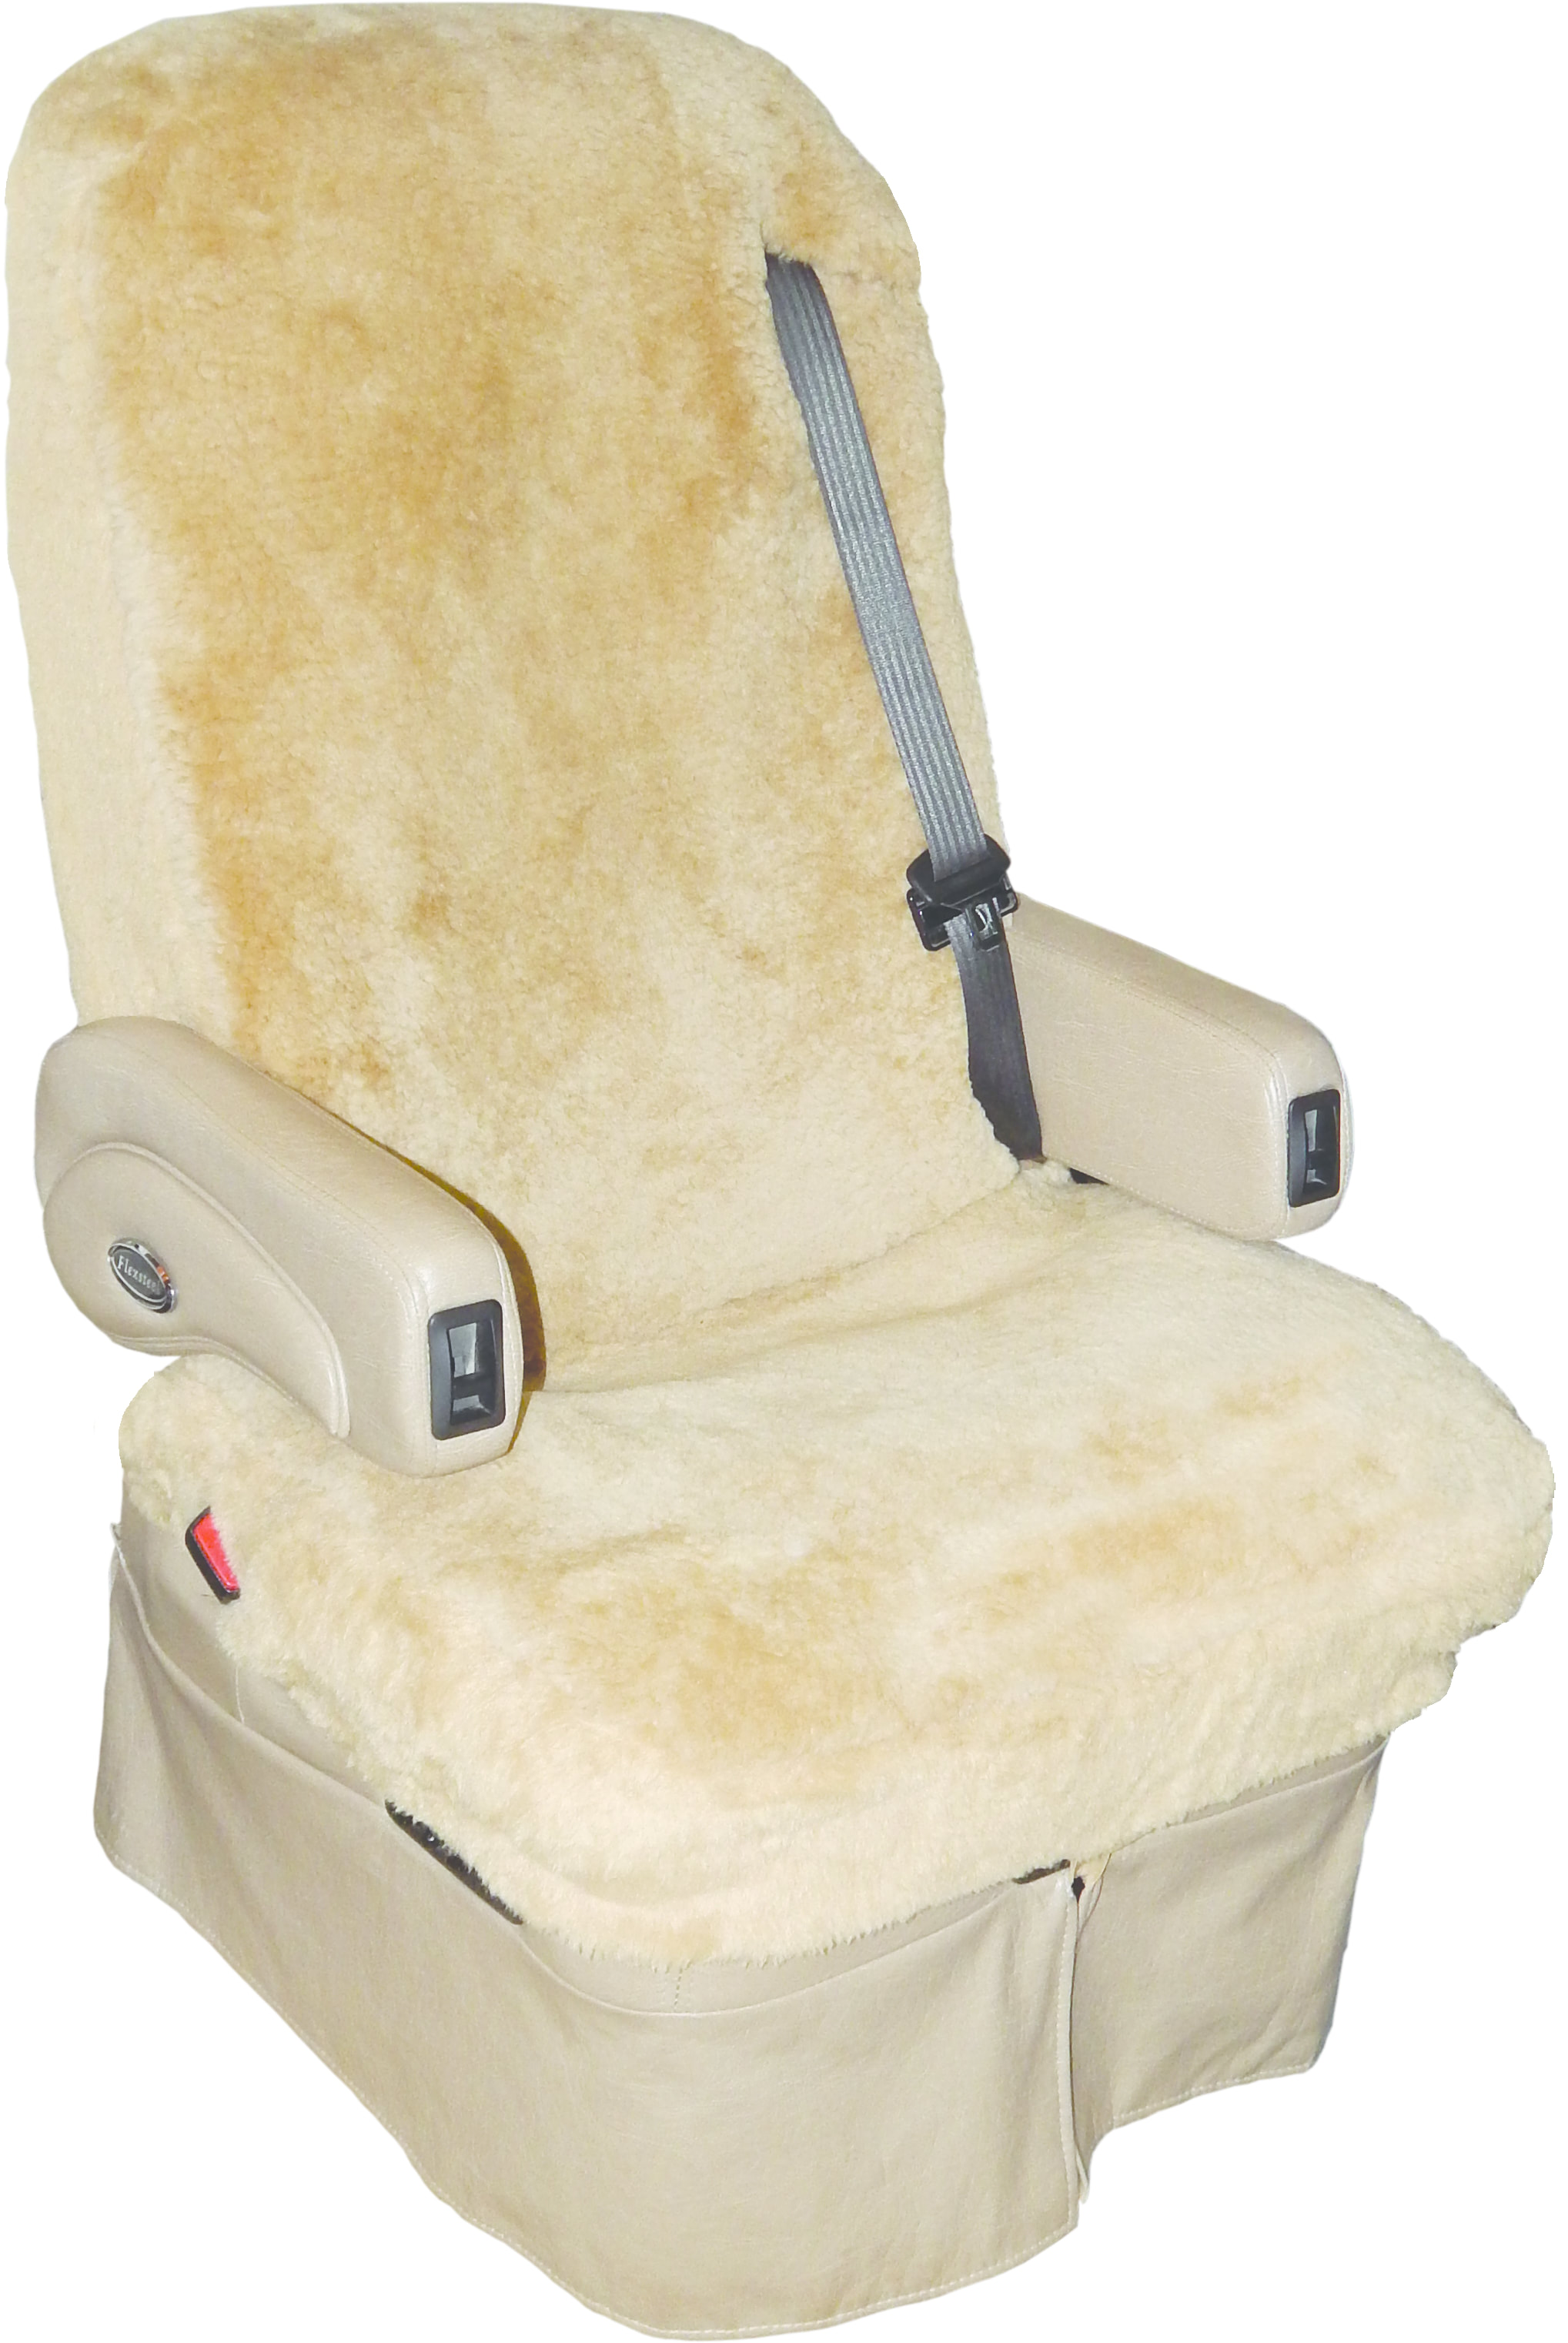 Tailor Made Sheepskin Seat Covers for RVs  Motorhomes